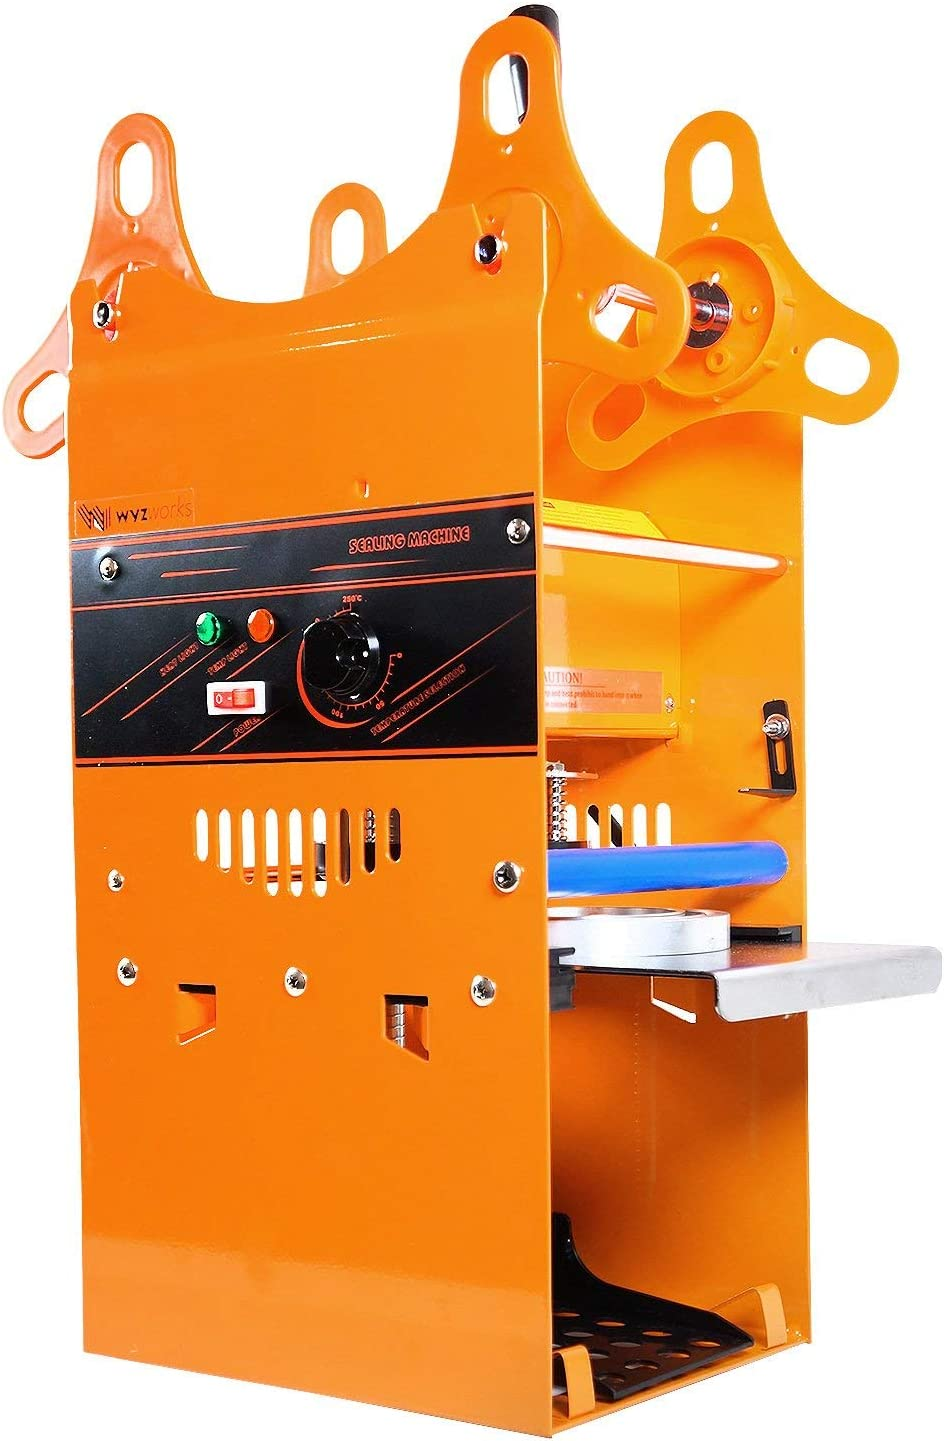 WYZwork Manual 180mm Tall Boba Tea Cup Sealer Sealing Machine High Operating Speed 300-500 Cups/hr 270W